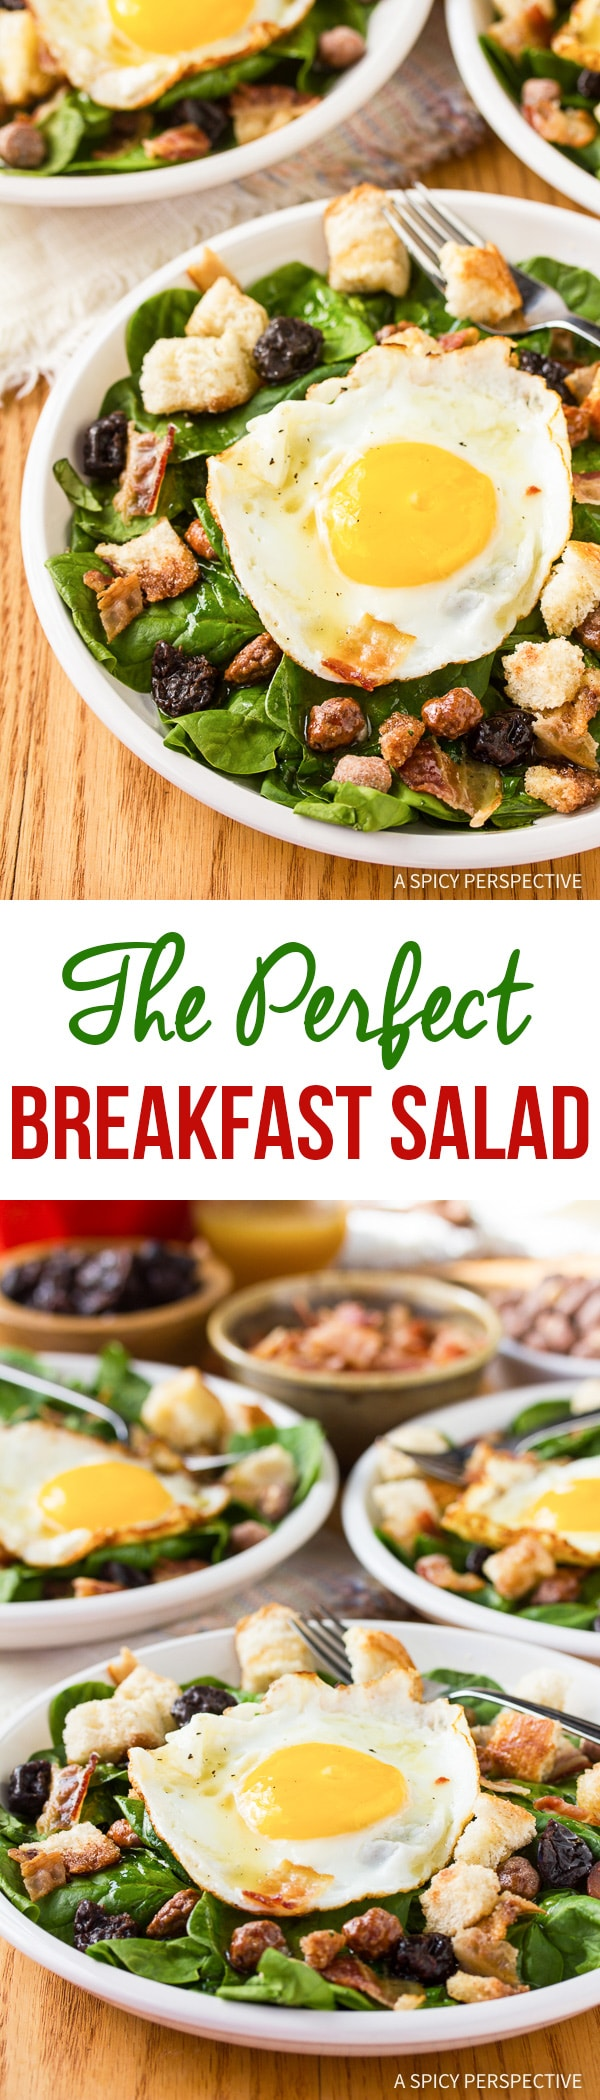 The Breakfast Salad Recipe with Cinnamon Toast Croutons and Maple Vinaigrette